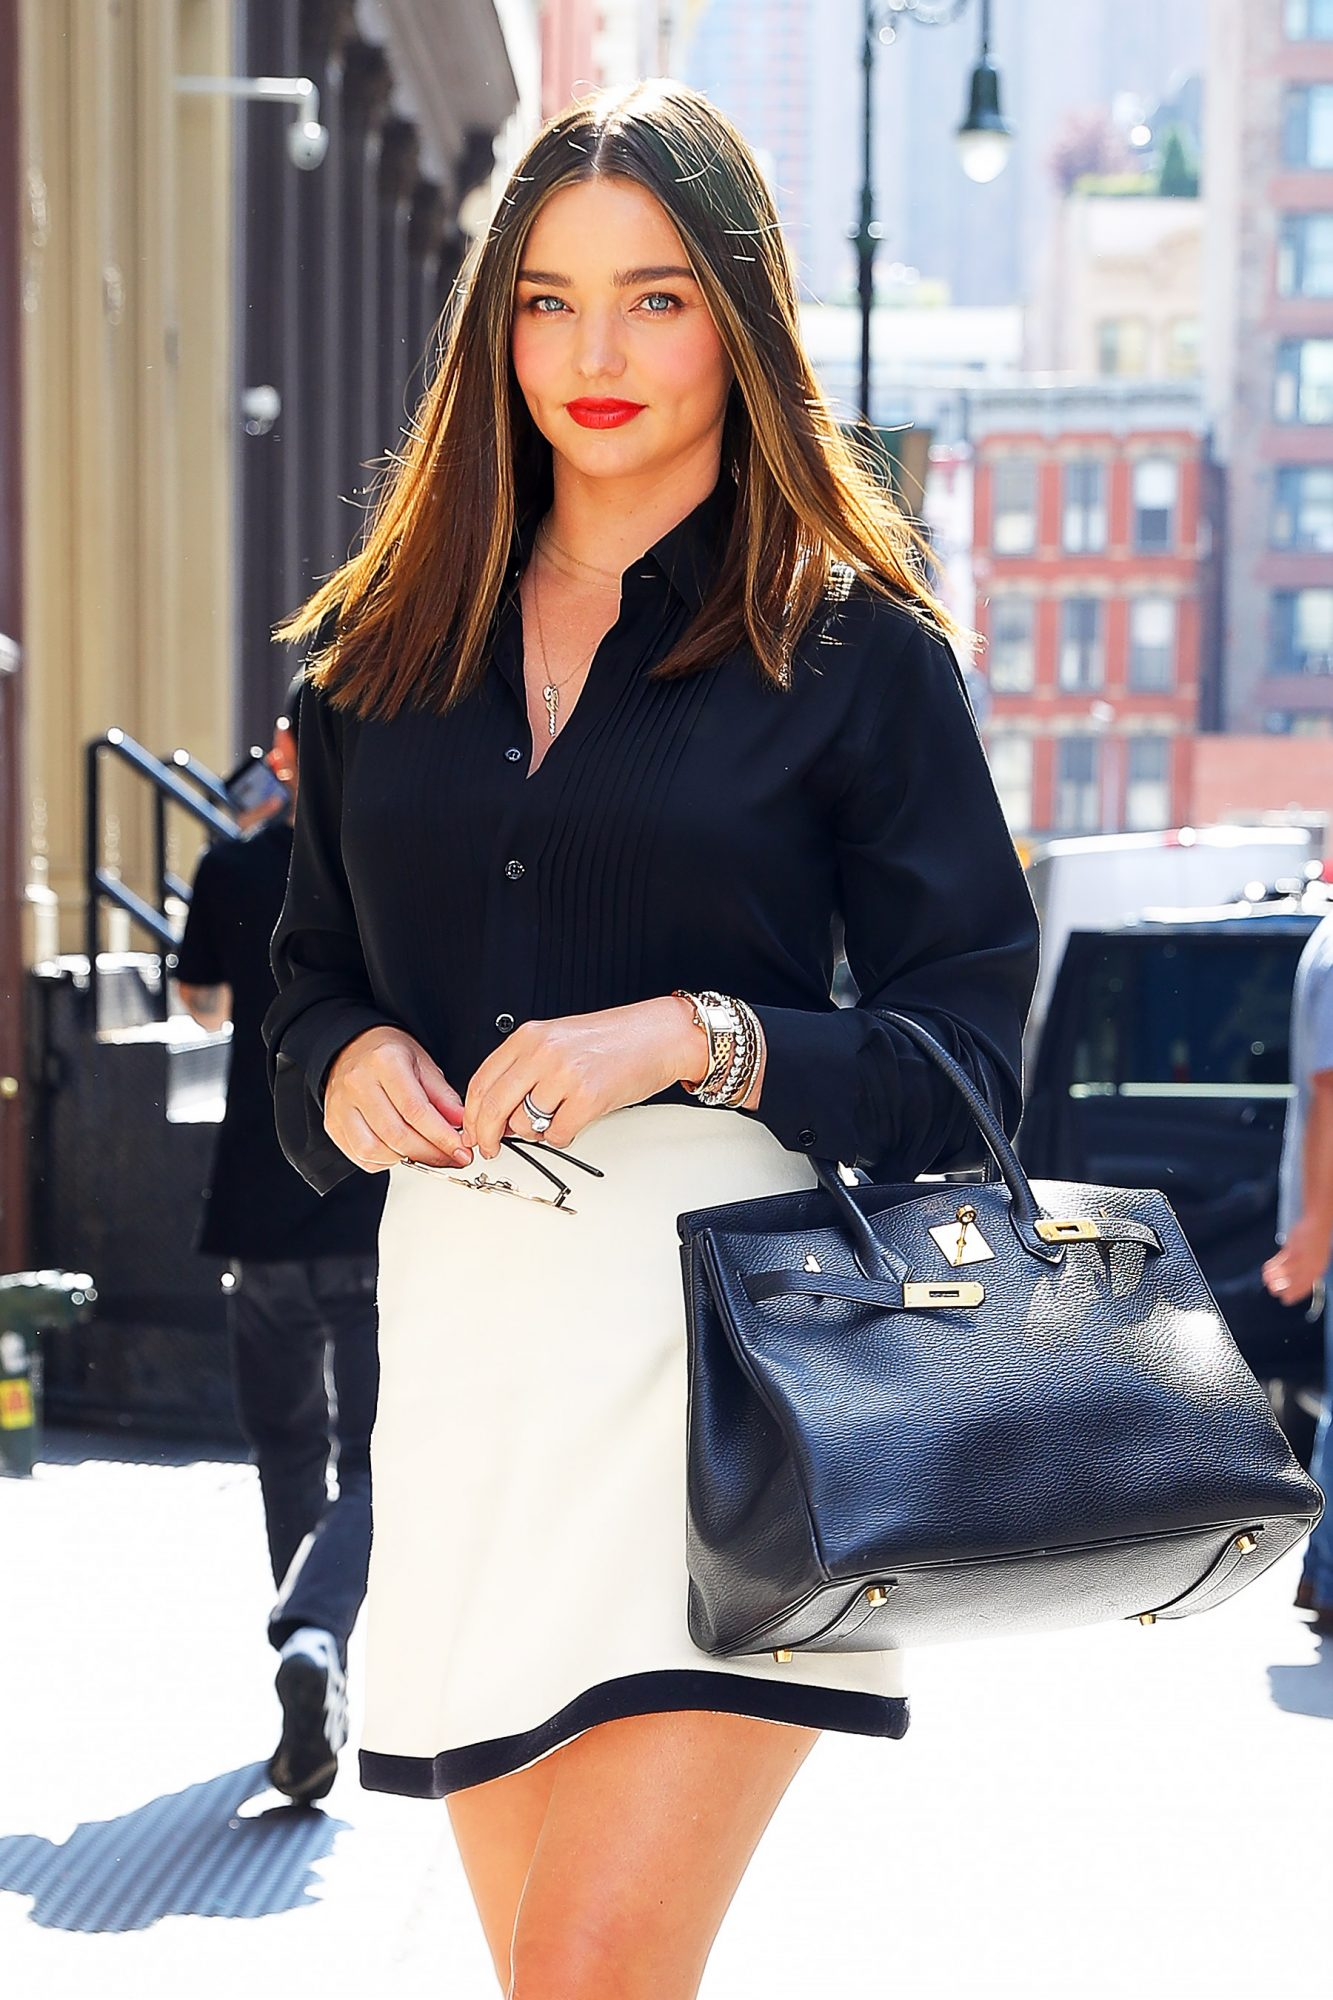 EXCLUSIVE: Miranda Kerr steps out in New York City, Post Baby